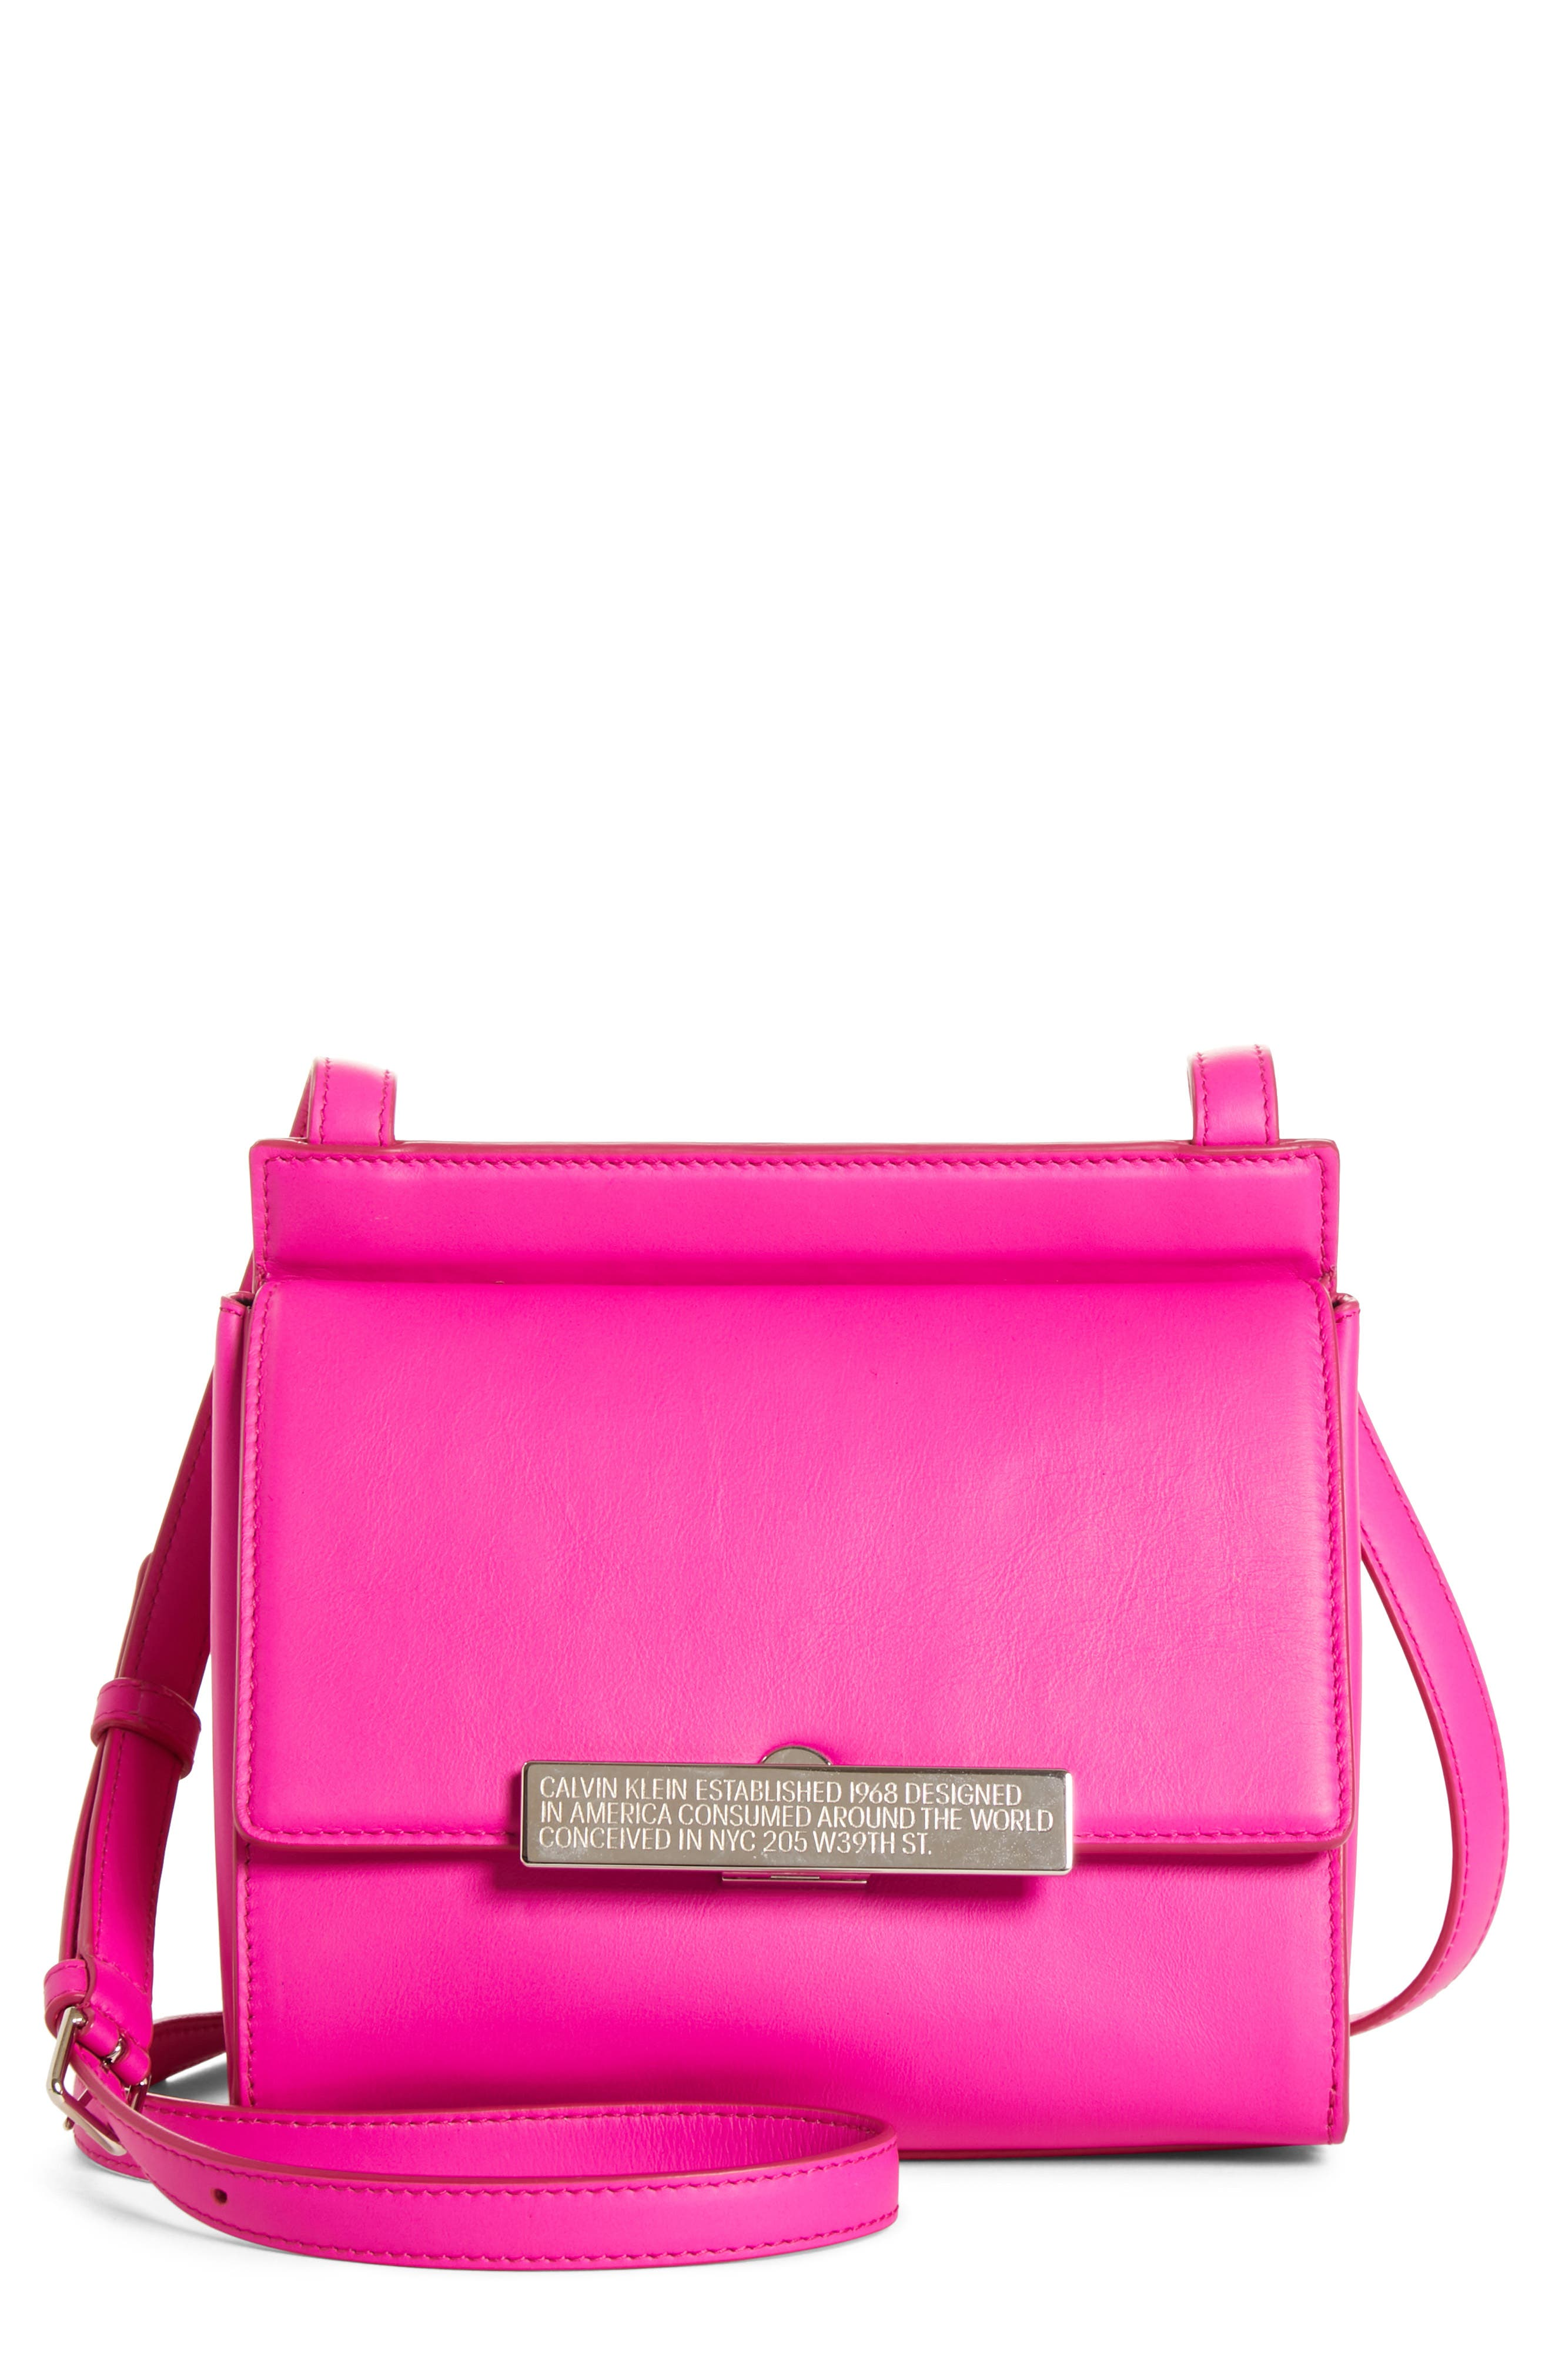 CALVIN KLEIN 205W39NYC Starr Leather Crossbody, Main, color, SHOCKING